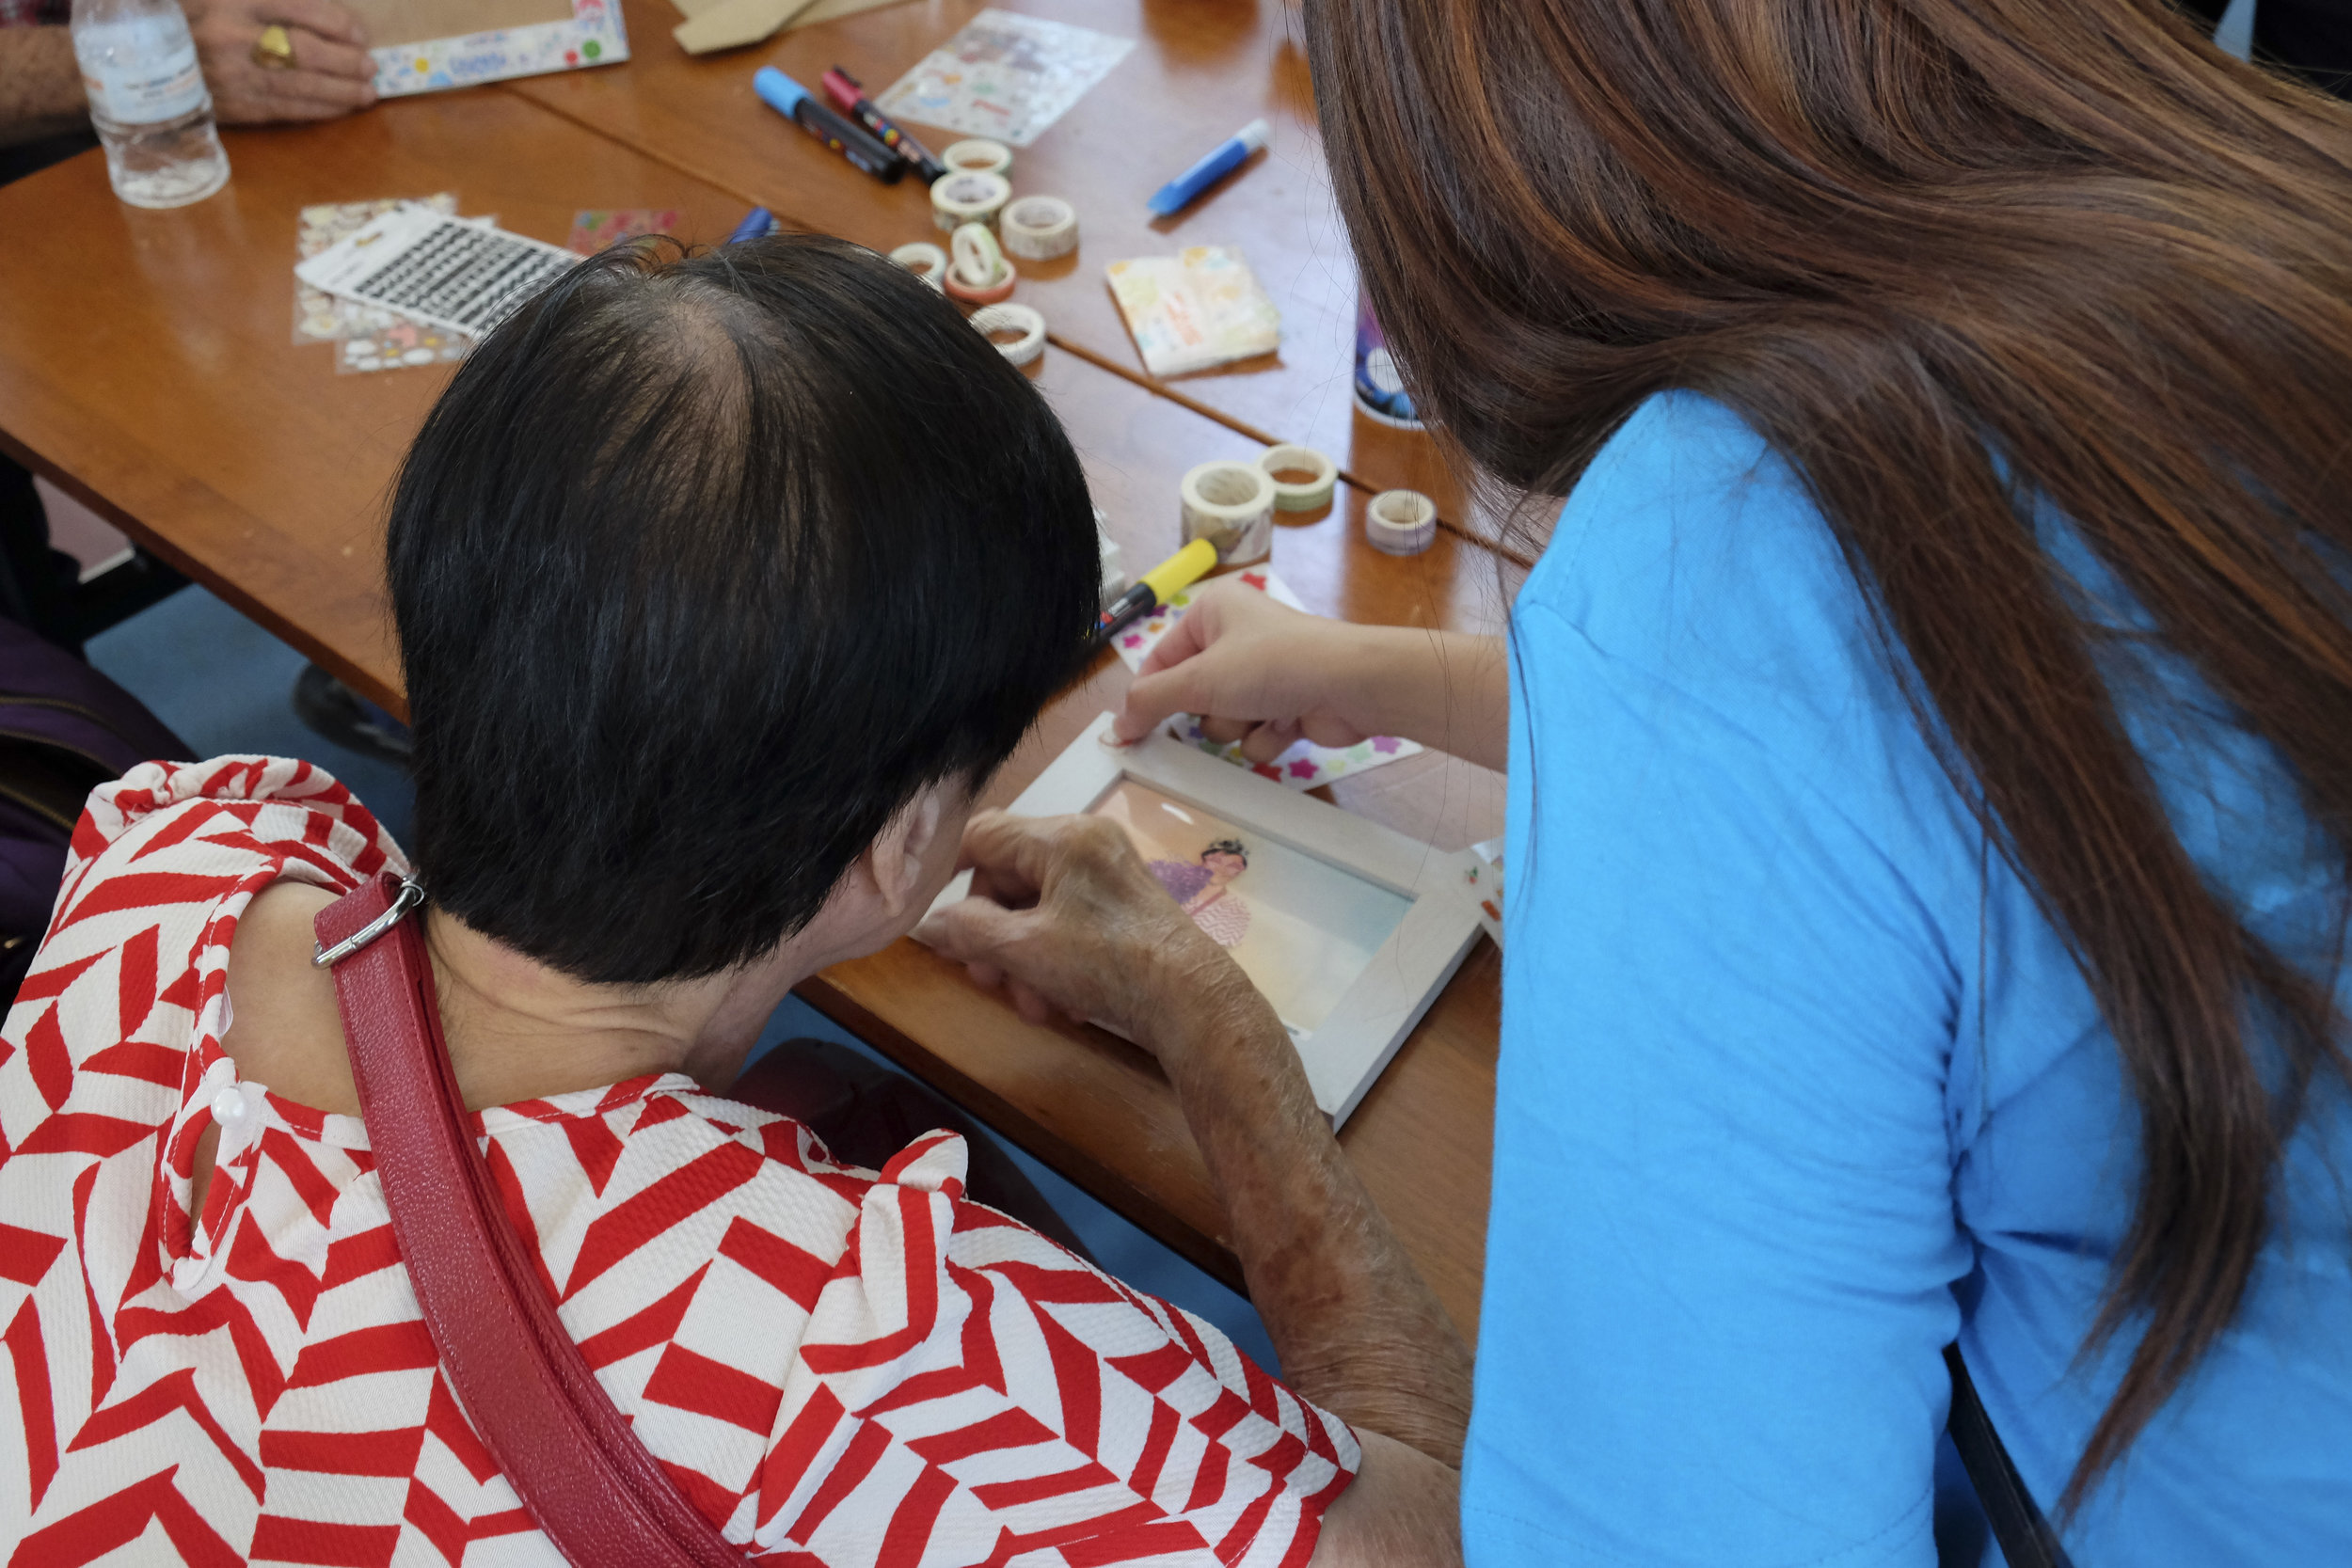 Moving on, we got the elderly to sit around the tables to start decorating photo frames for them to take home. Team CoLOVEful had stickers that ranged from food to cartoons, washi tapes, stars and googly eyes. The elderly were assisted by the volunteers to decorate their photo frame.  Before the event ended, food was served and the elderly had local sweet and savoury delicacies after long hours of having fun. Sweet delicacies from both Chinese and Malay race were included, savoury delicacies included our local favourites like curry puff, egg tarts and carrot cake sticks.